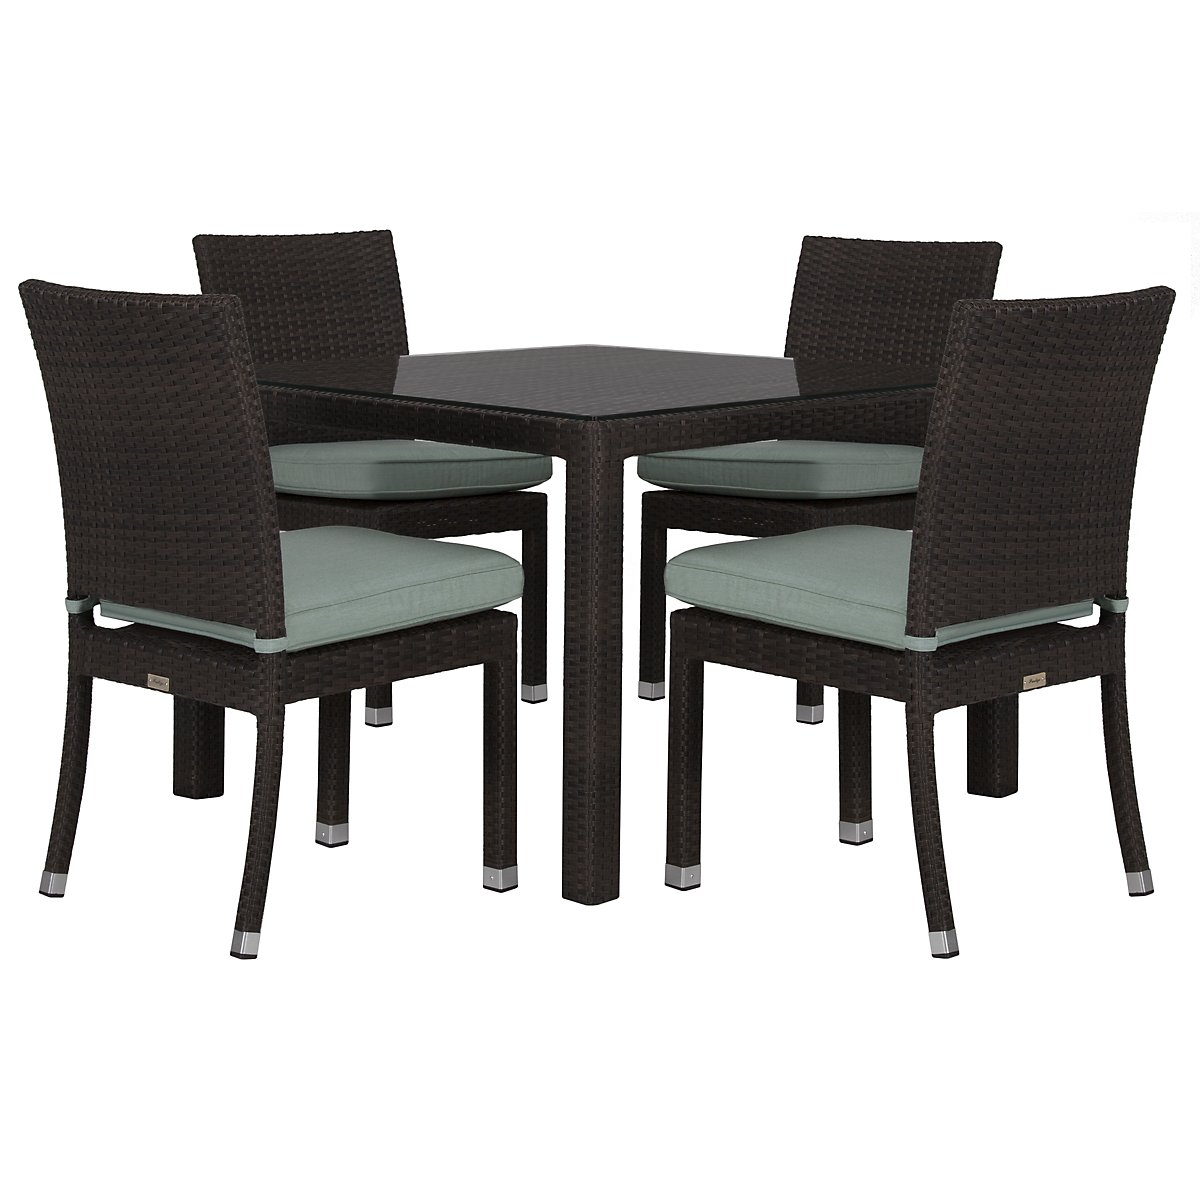 "Zen Teal 40"" Square Table & 4 Chairs"